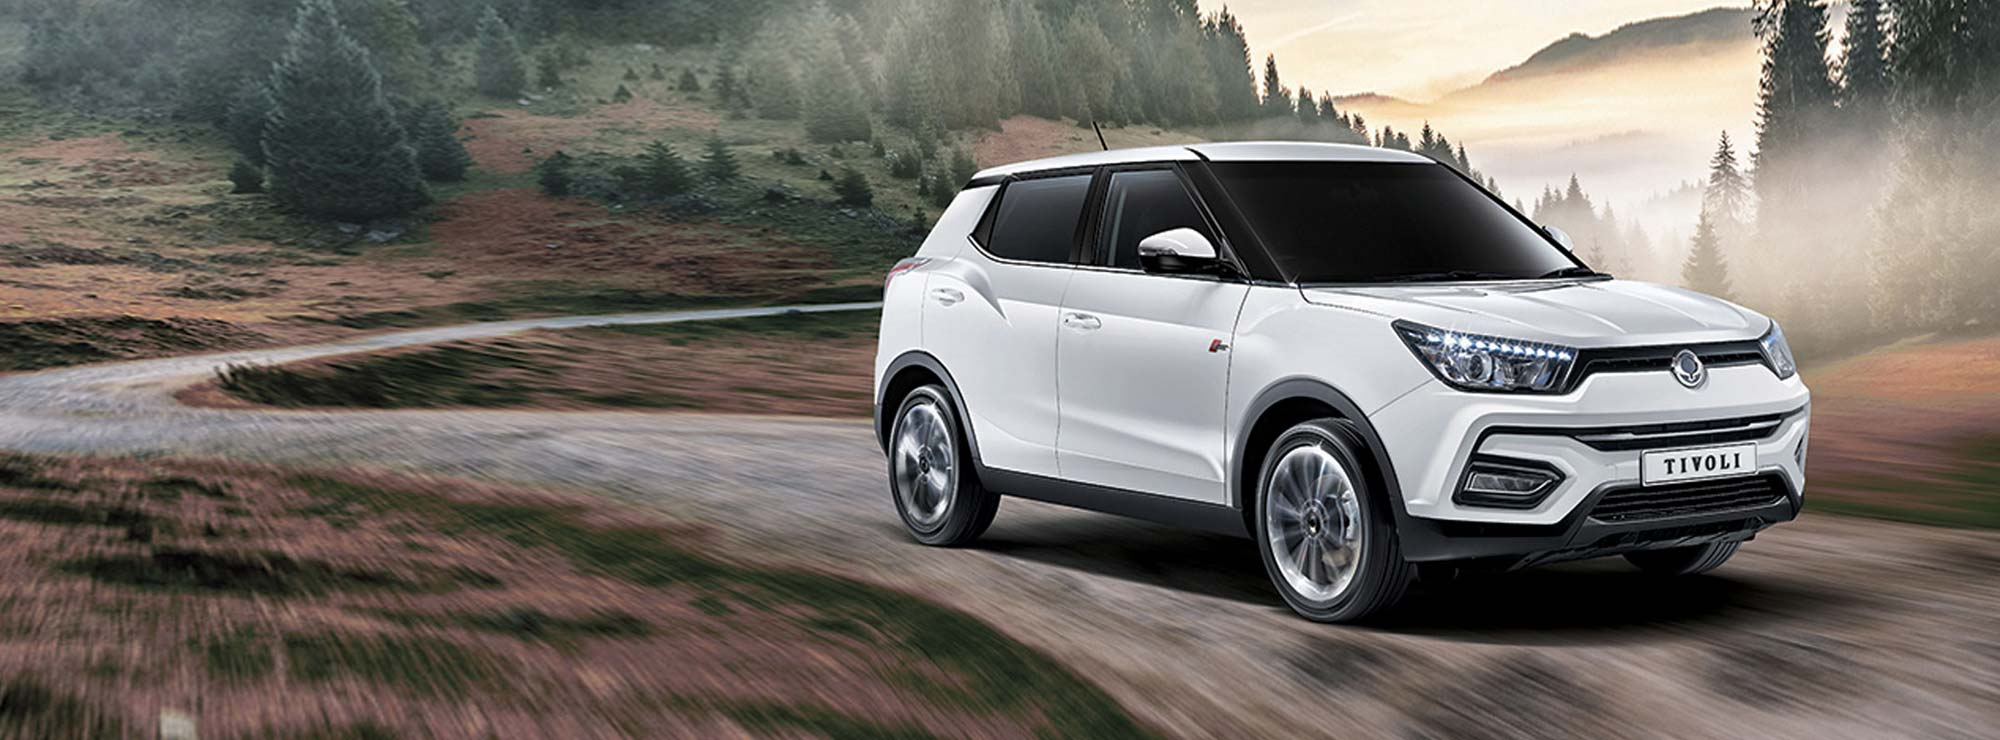 <strong>Tivoli From £14,495</strong>